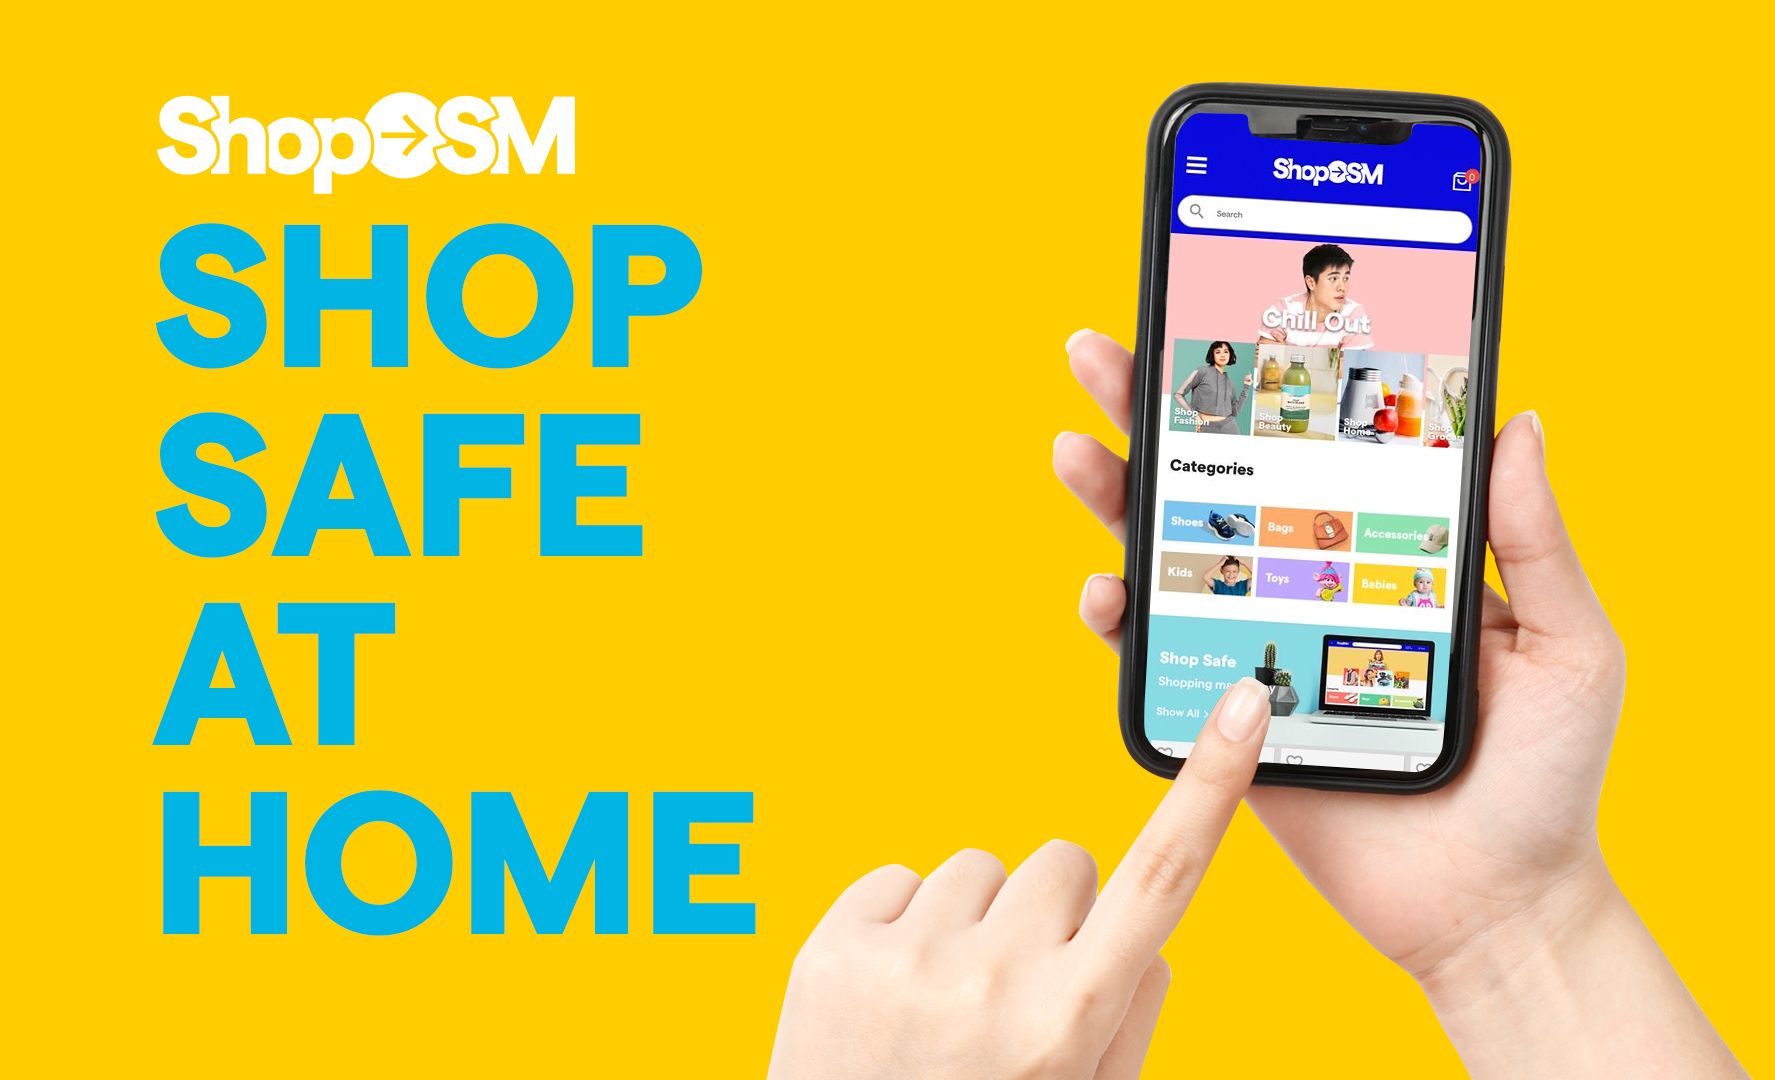 SM Retail stores promotes safe shopping and customer convenience